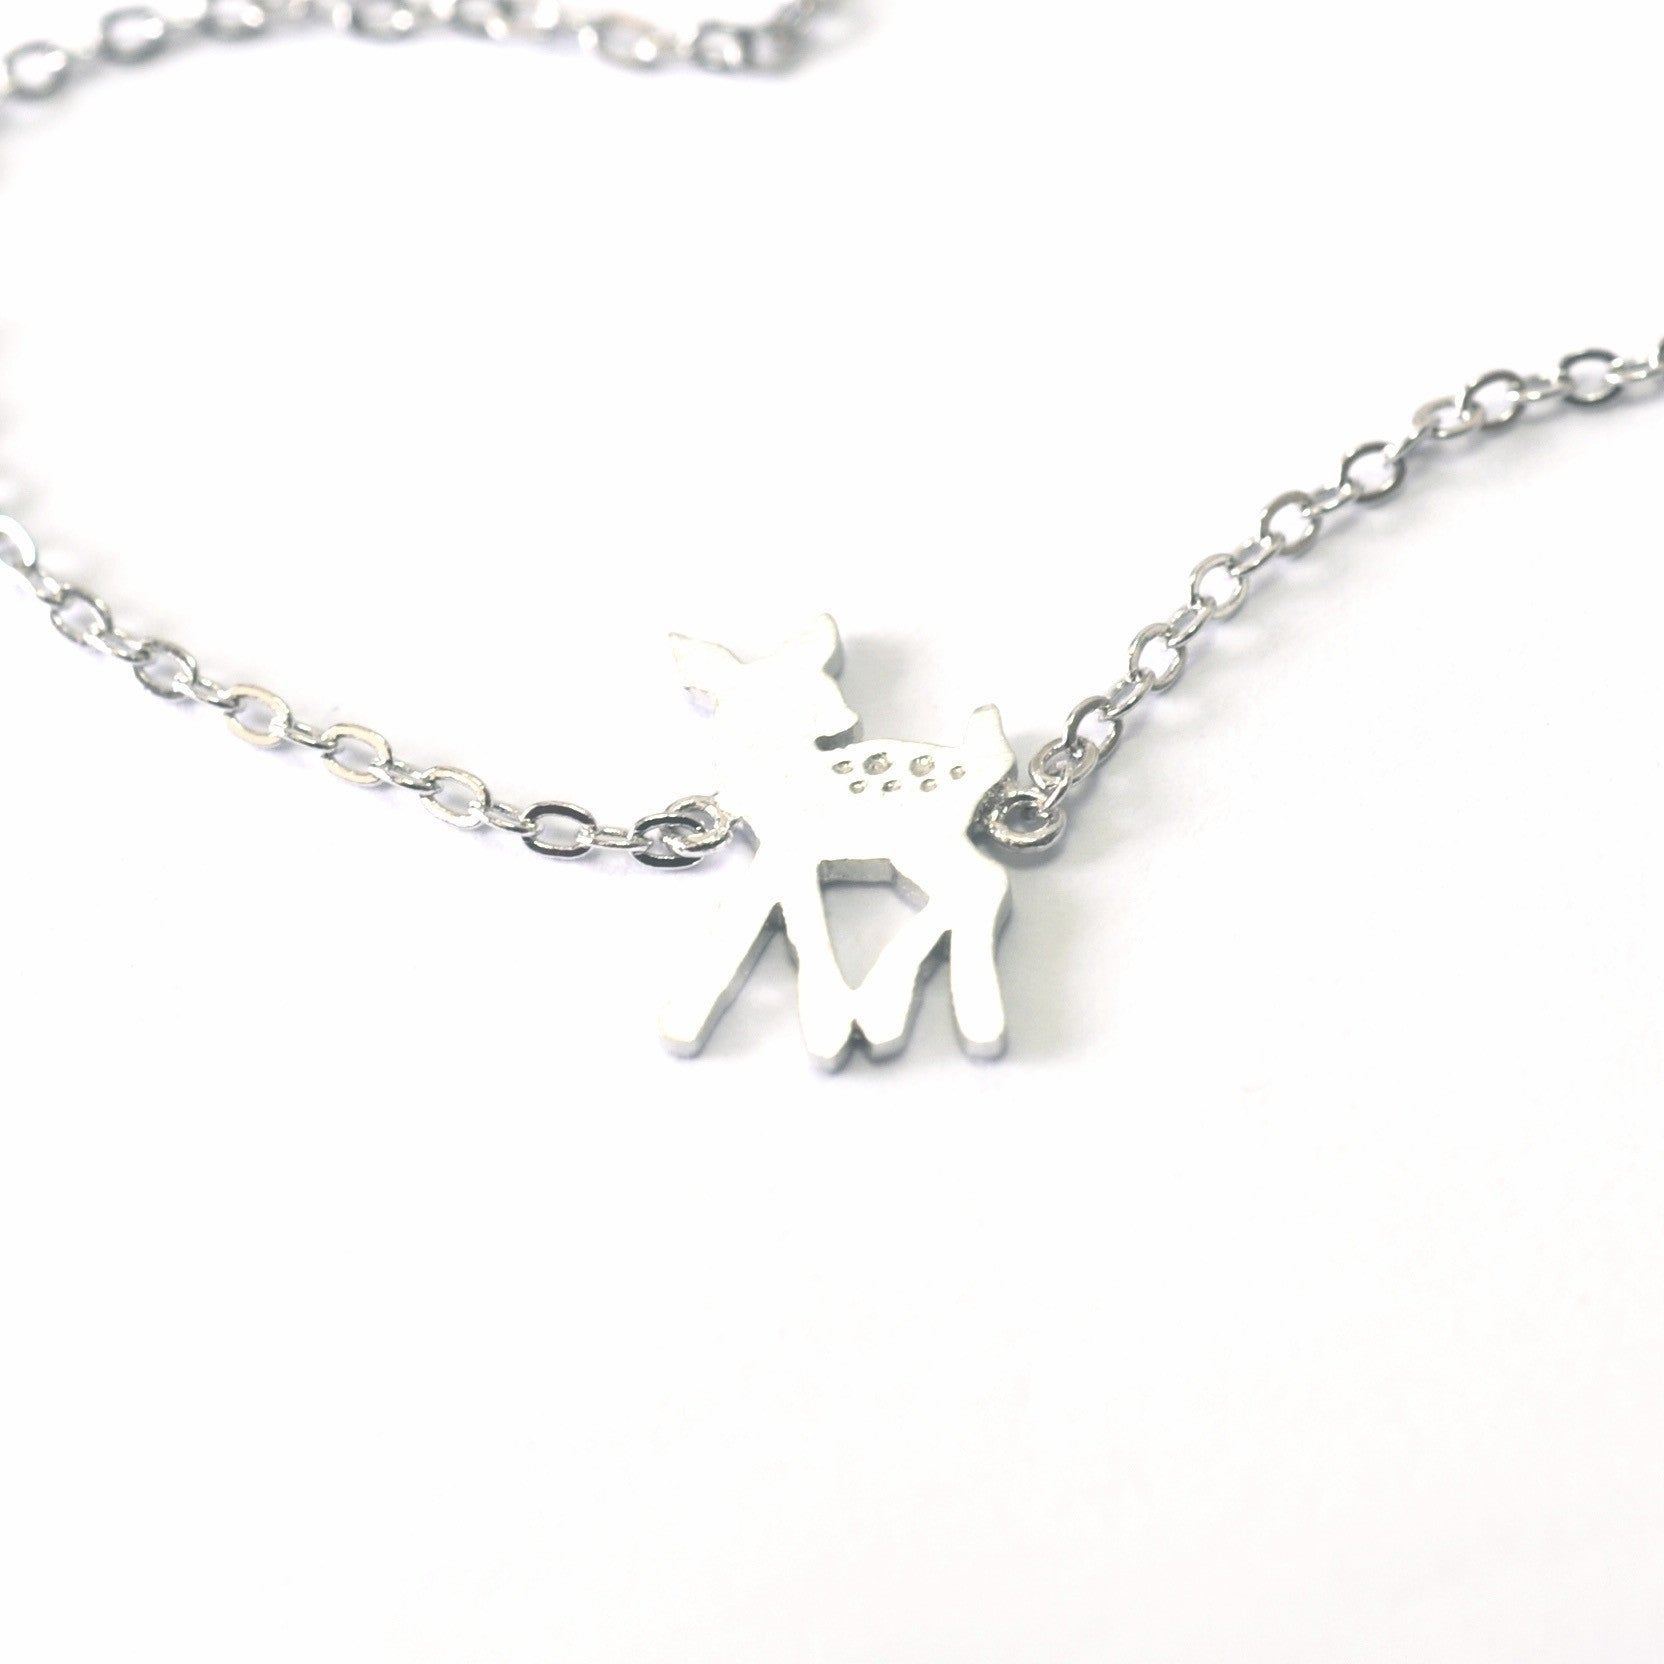 Prancer Deer Bracelet